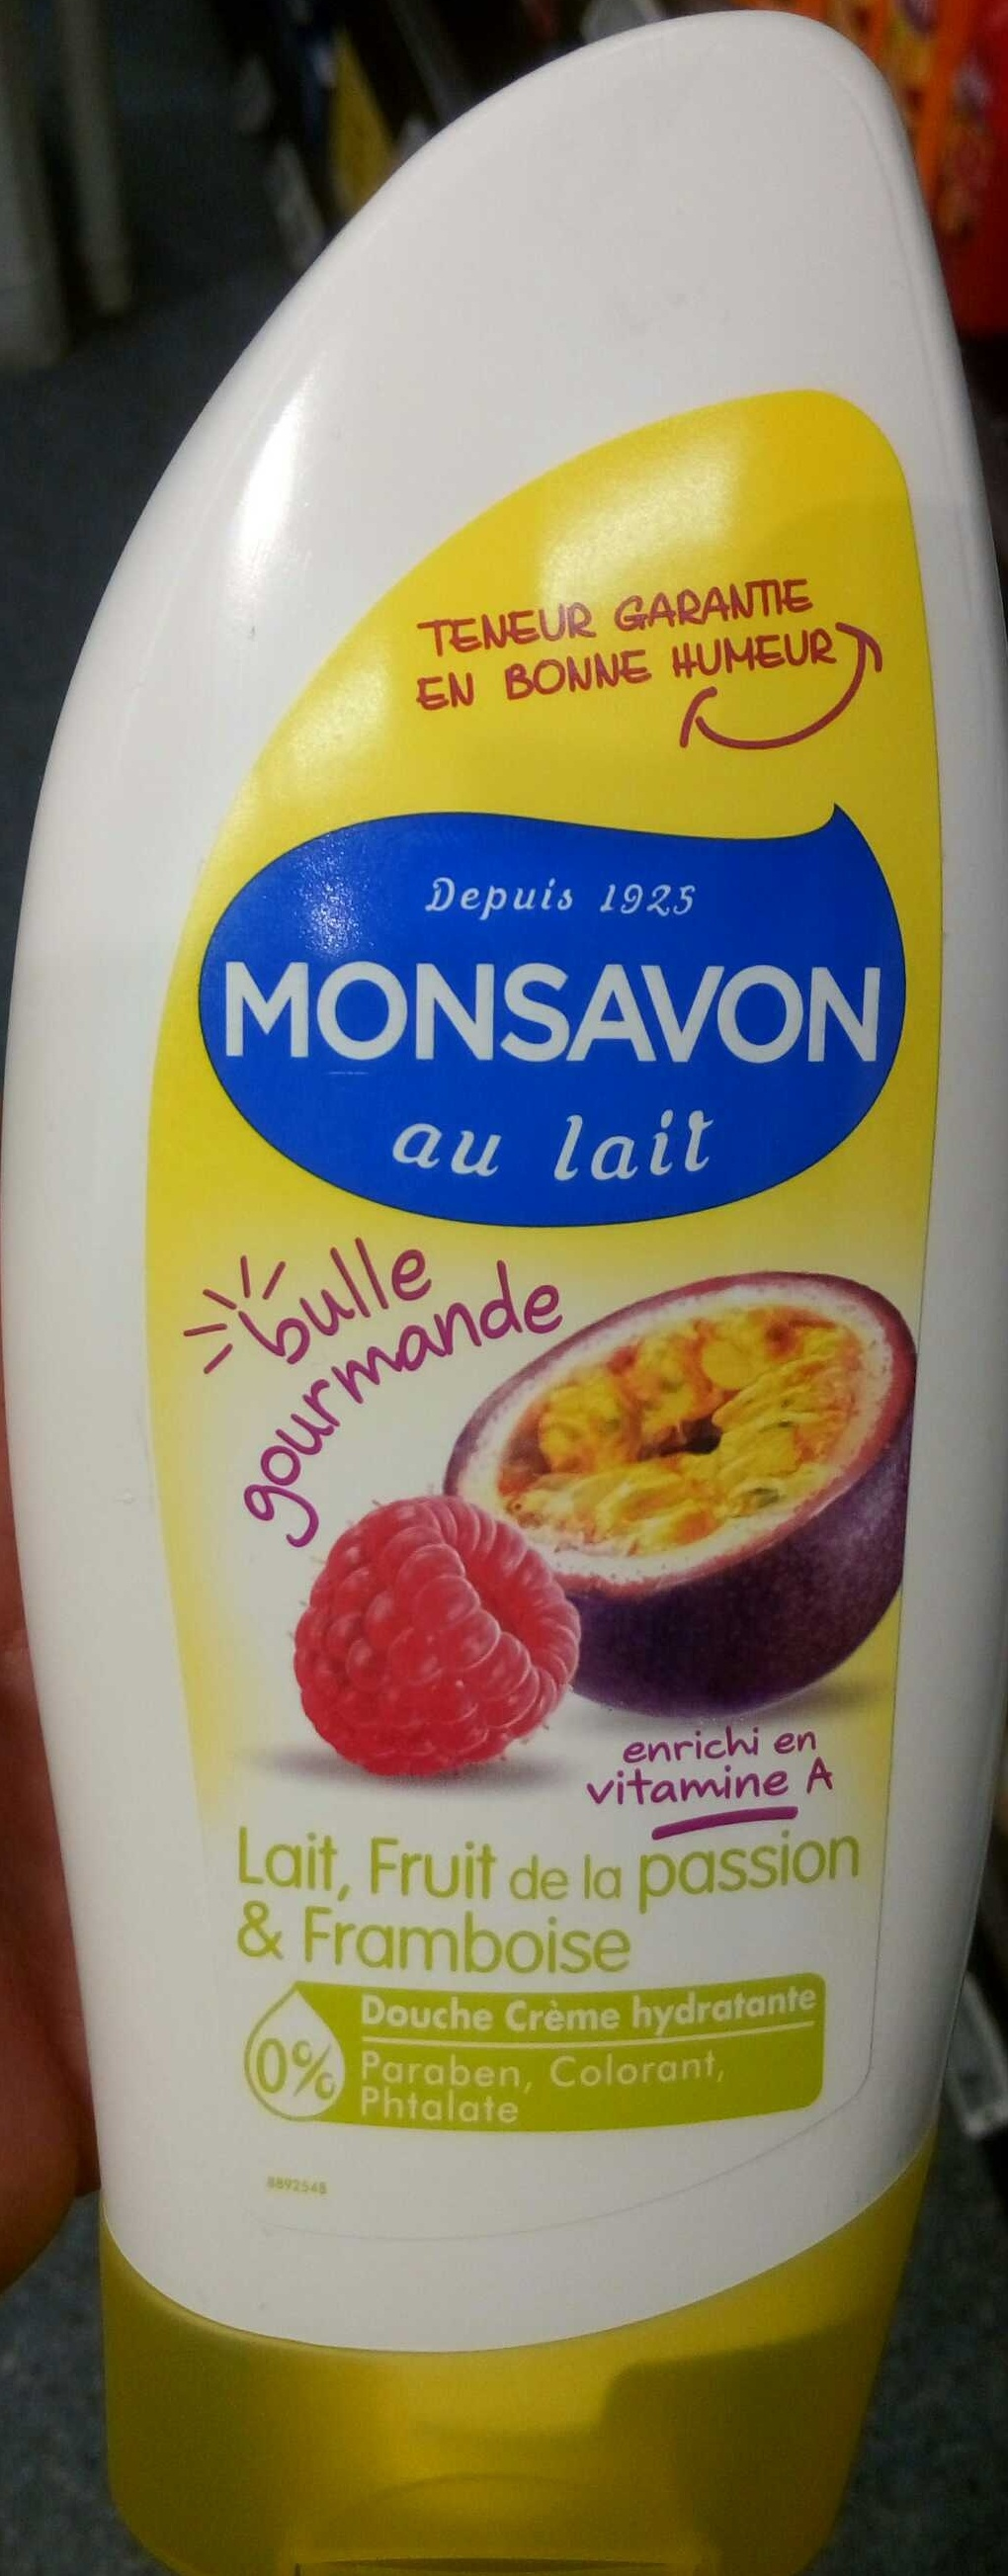 Bulle gourmande, Lait, Fruit de la passion & Framboise - Product - fr